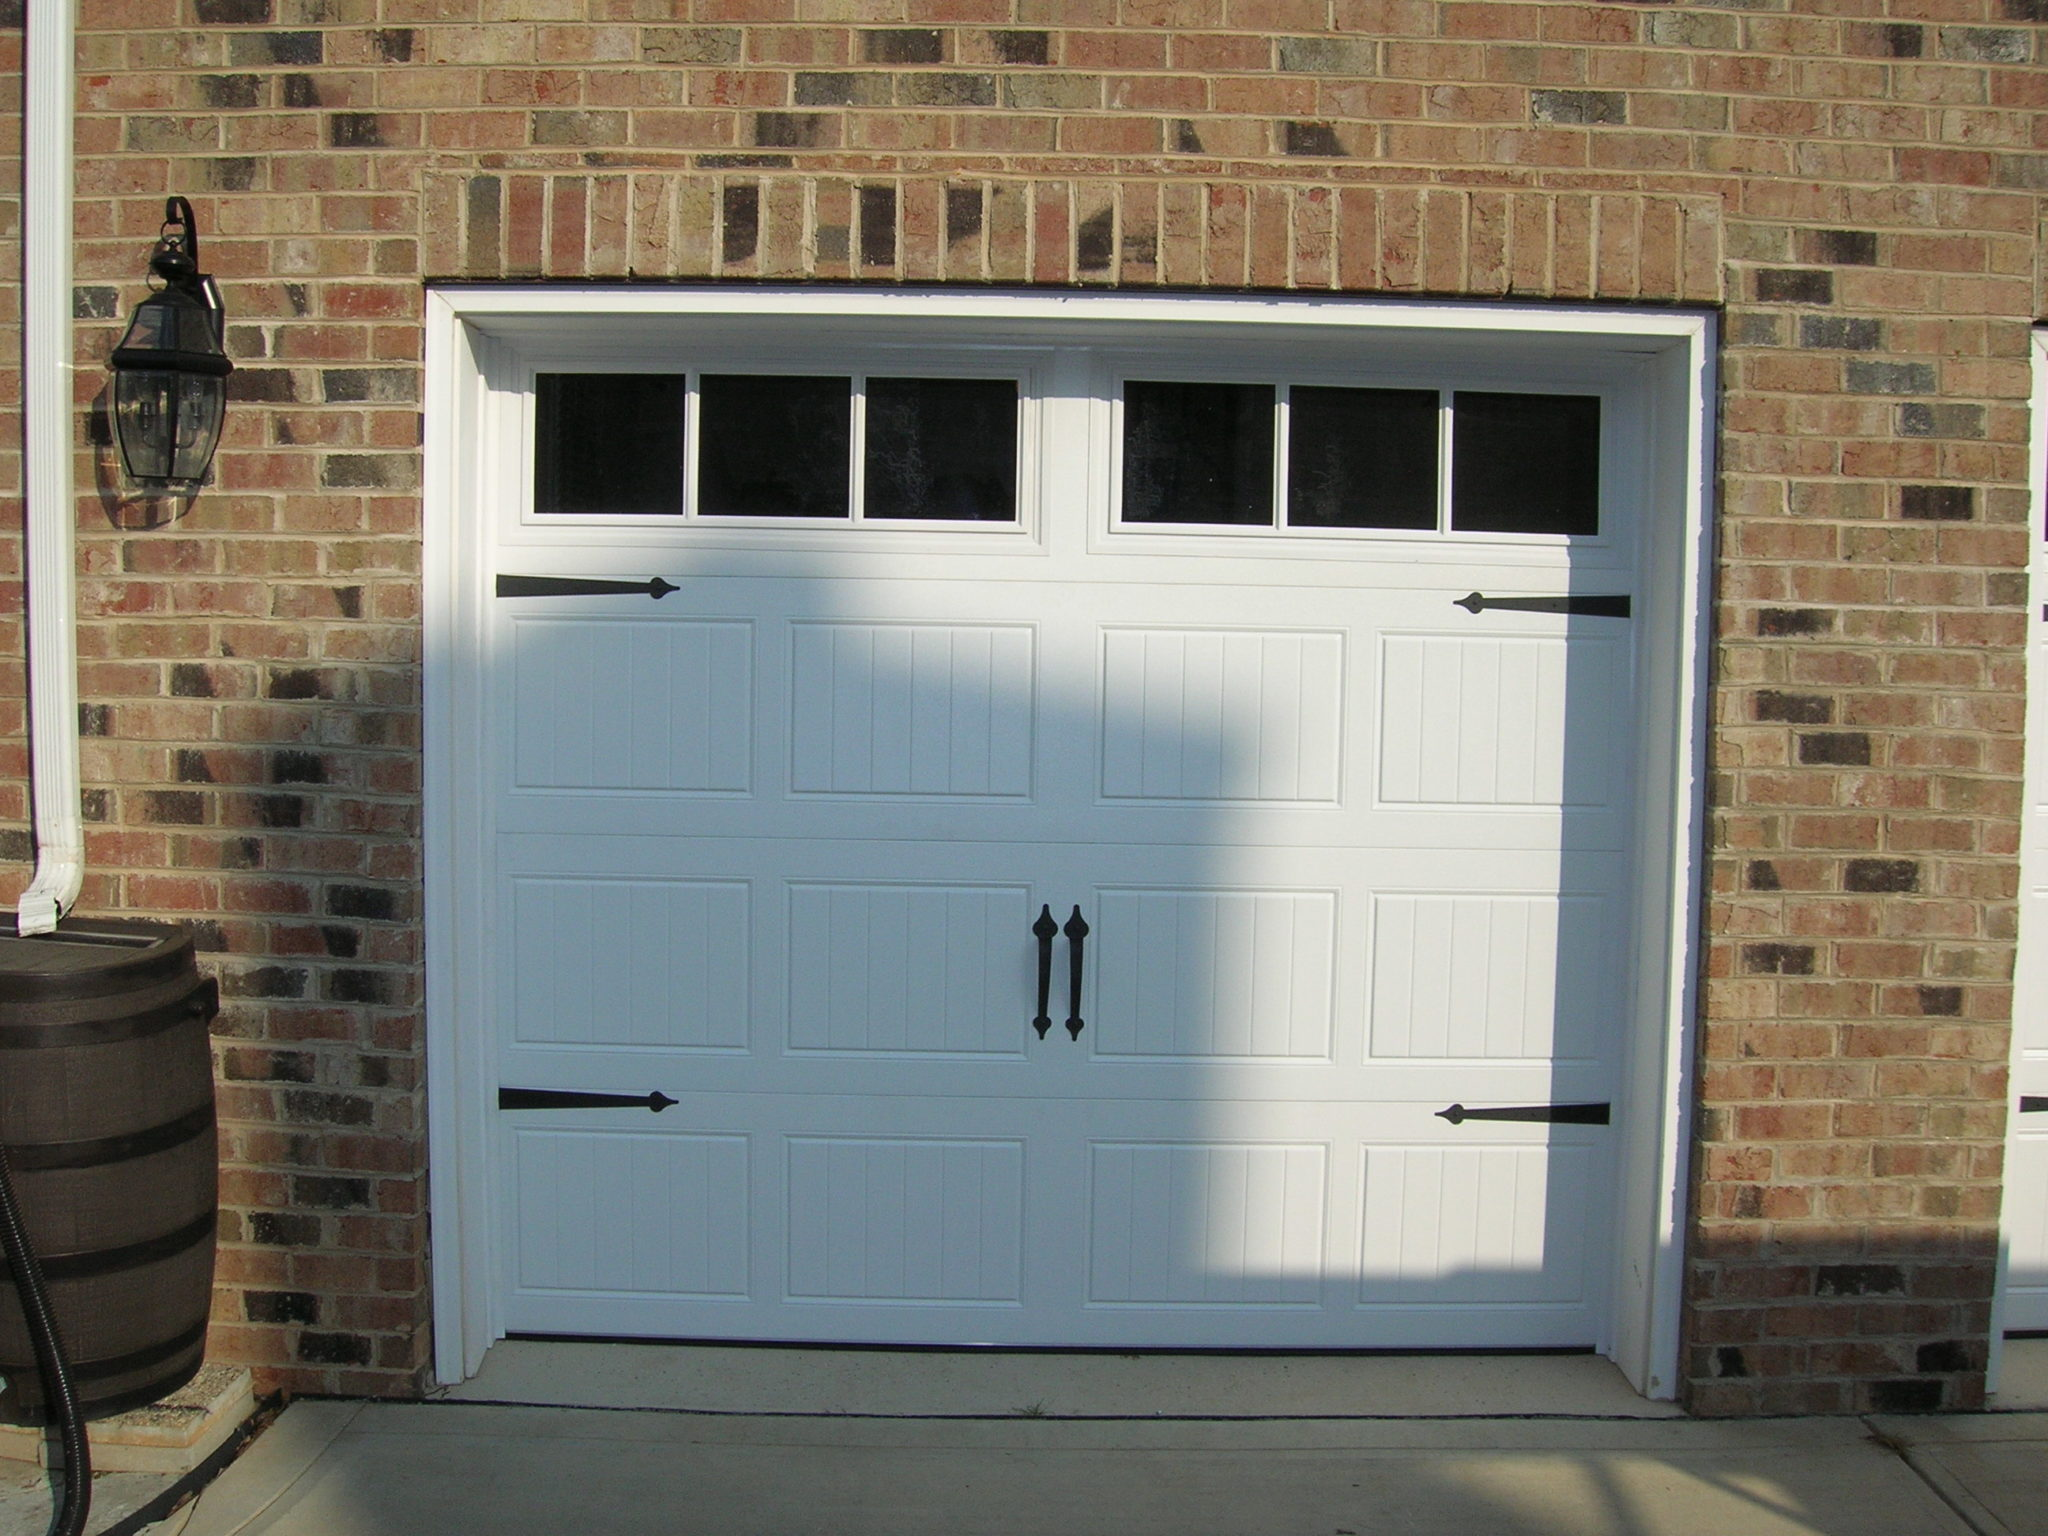 Doors To Garage: A Plus Garage Doors